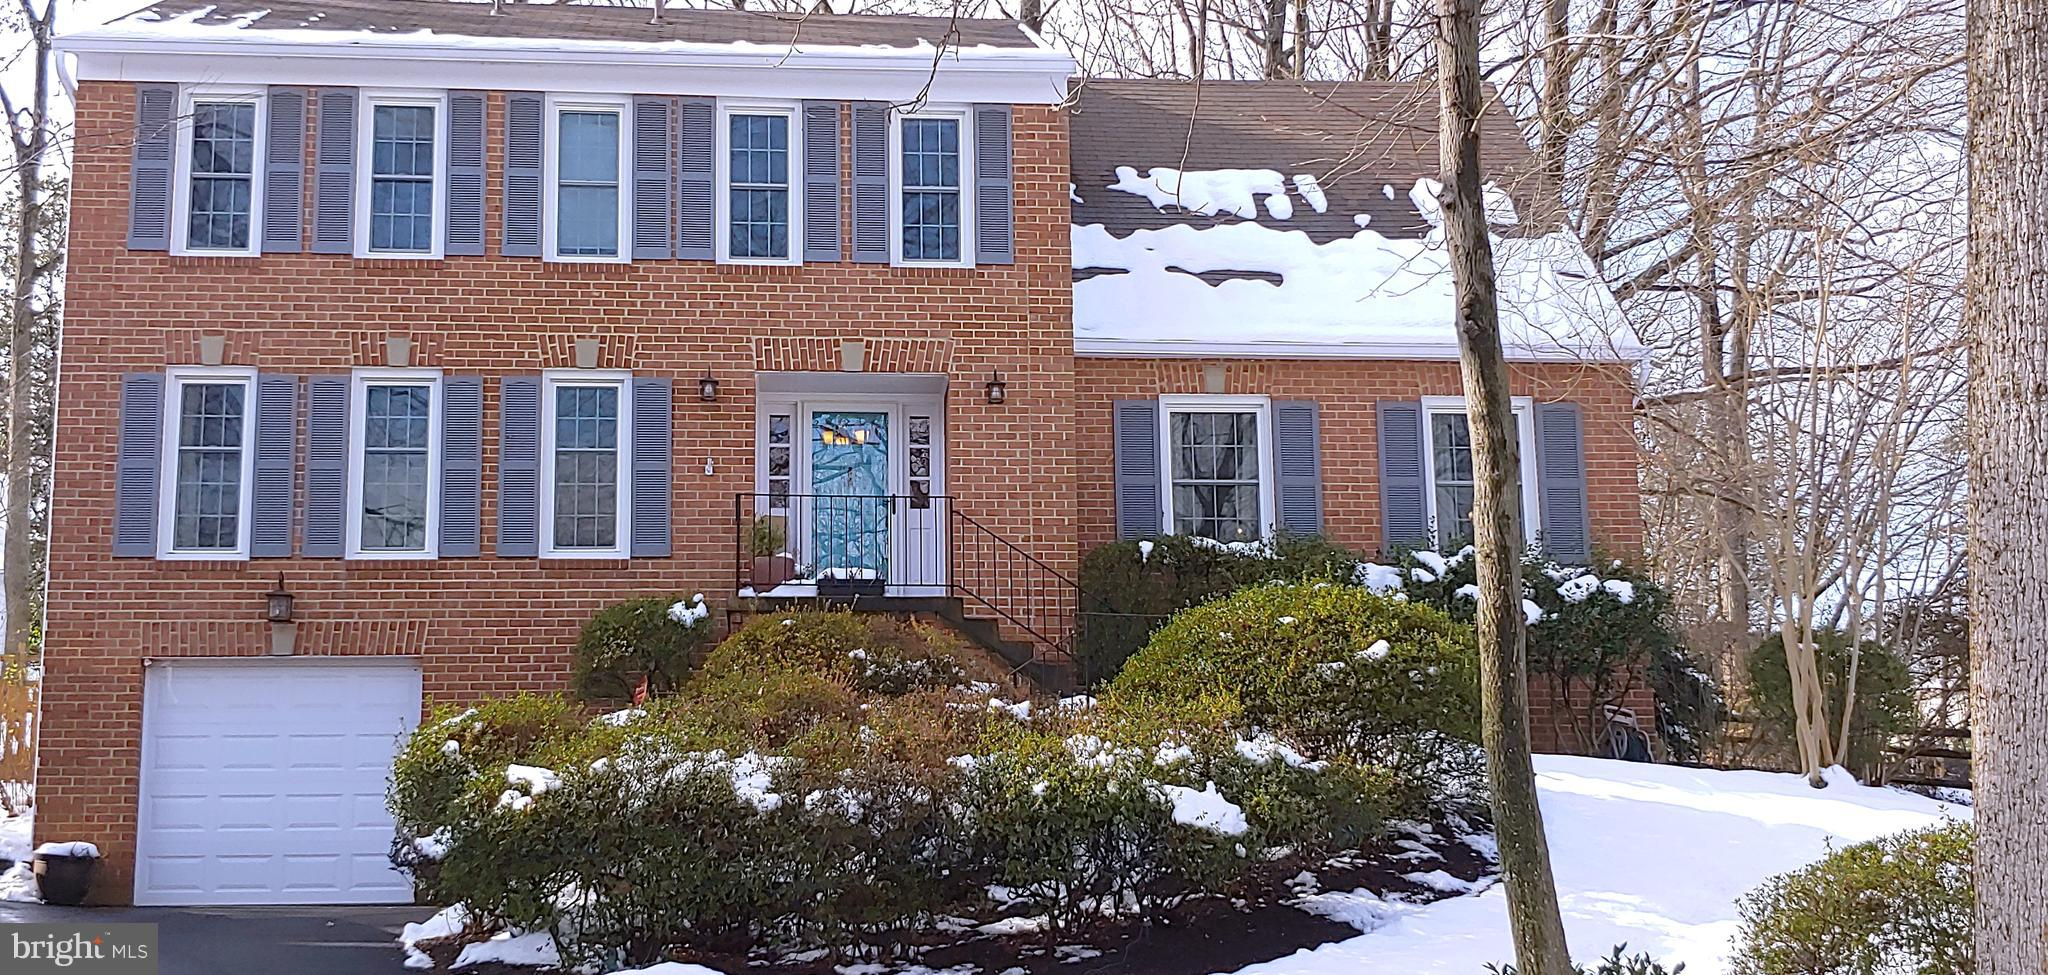 Beautiful 5BD/2.5BA Home in Wooded Neighborhood with walking trails, close to shops, 267, Reston Wiehle Station, and more. Traditional layout with den, family room ,fireplace, deck/patio, and loads of storage in the unfinished basement. Lawn care Maintenance Included and pest control!Pets case by case.